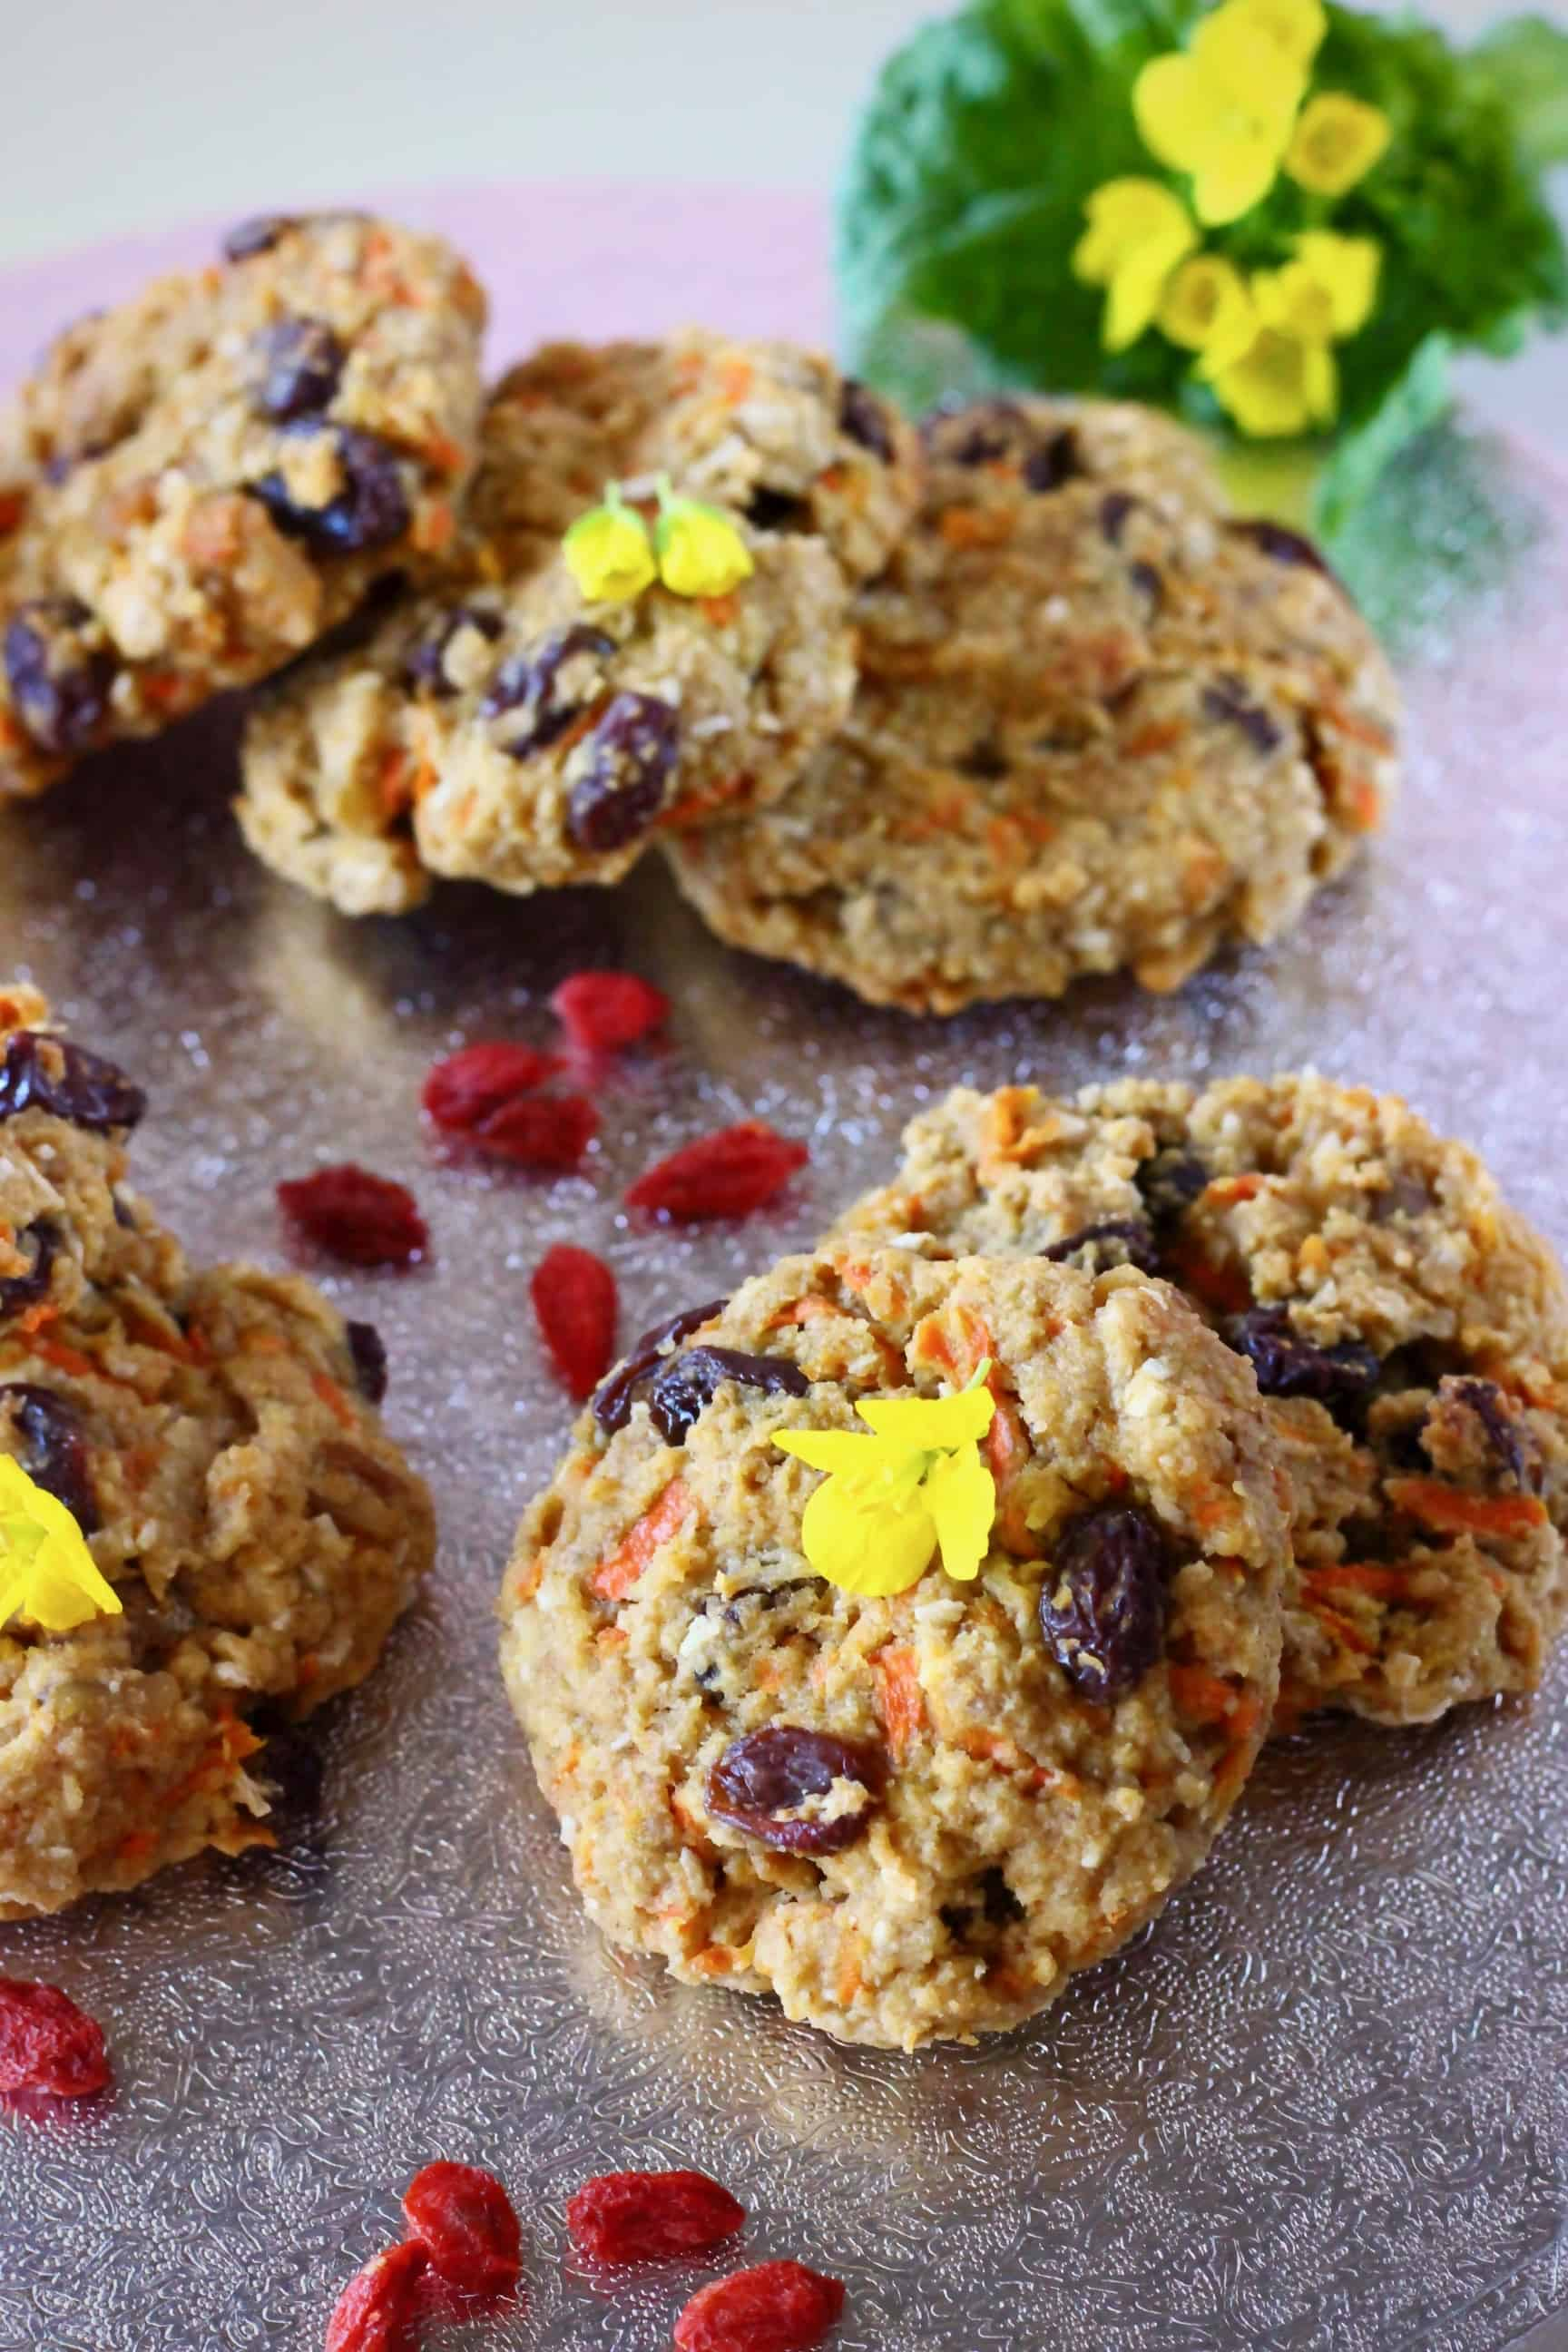 Several carrot cake cookies with raisins on a silver surface sprinkled with goji berries and yellow flowers